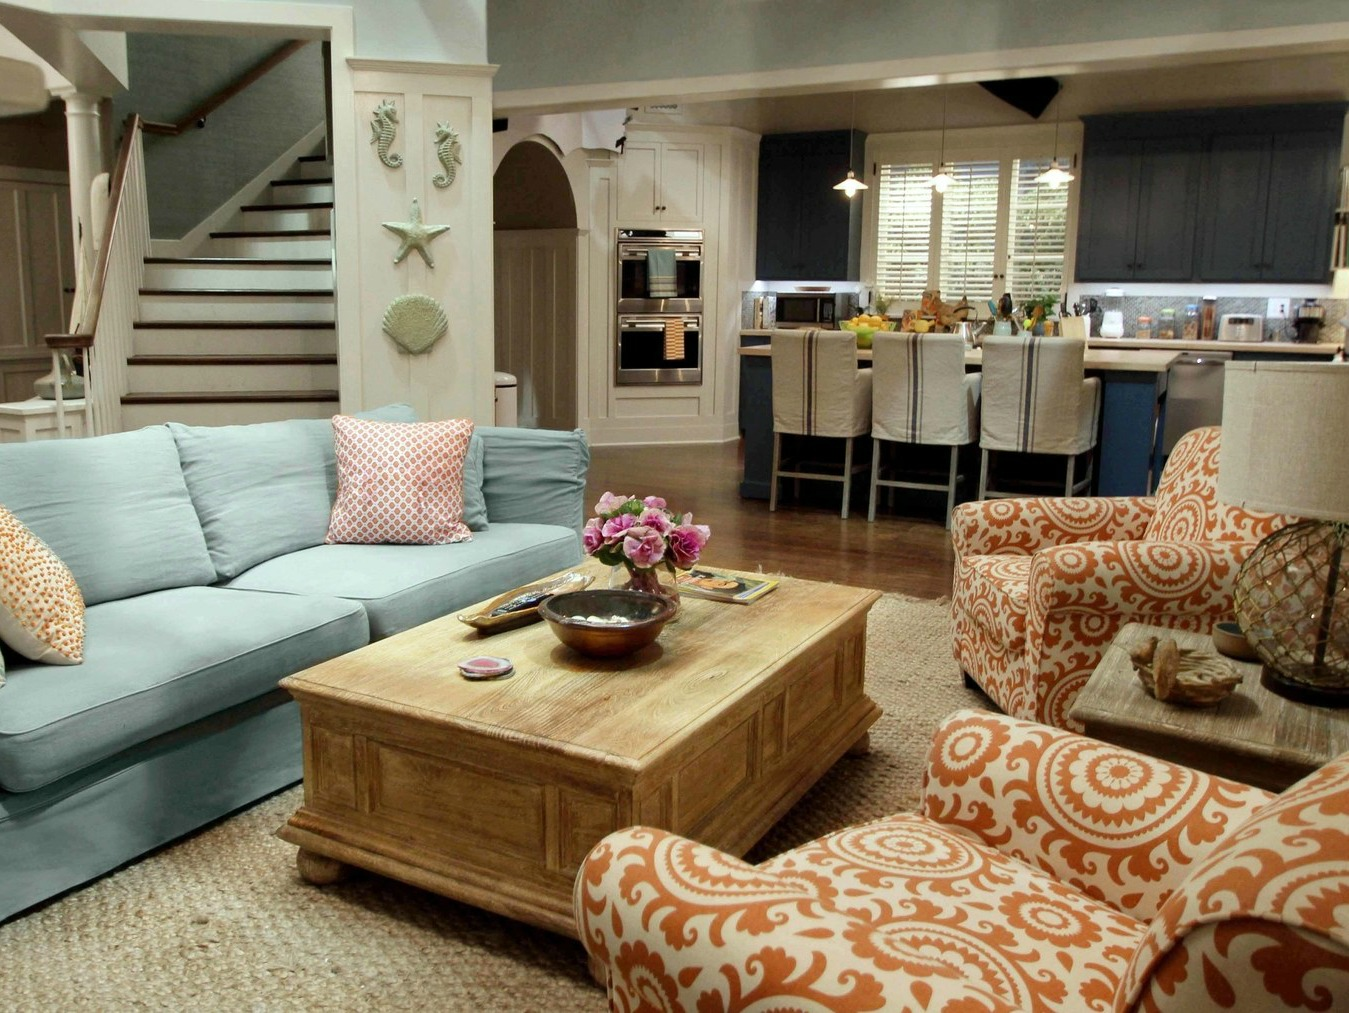 Grace & Frankie beach house living room and kitchen has inspired 15 Grace and Frankie Beach House Decorating Ideas!